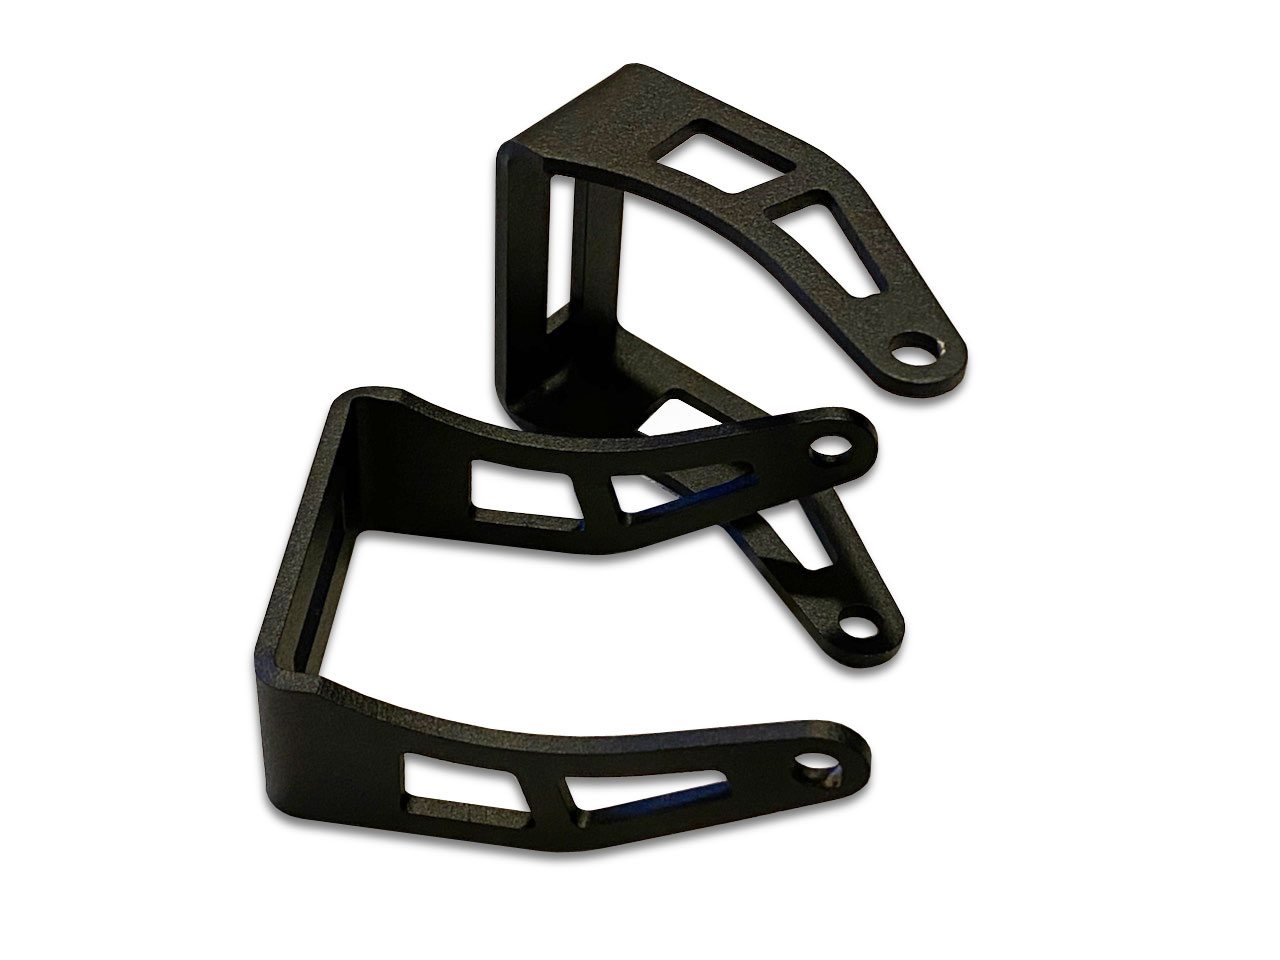 Hanging Brackets for Rigid D-Series